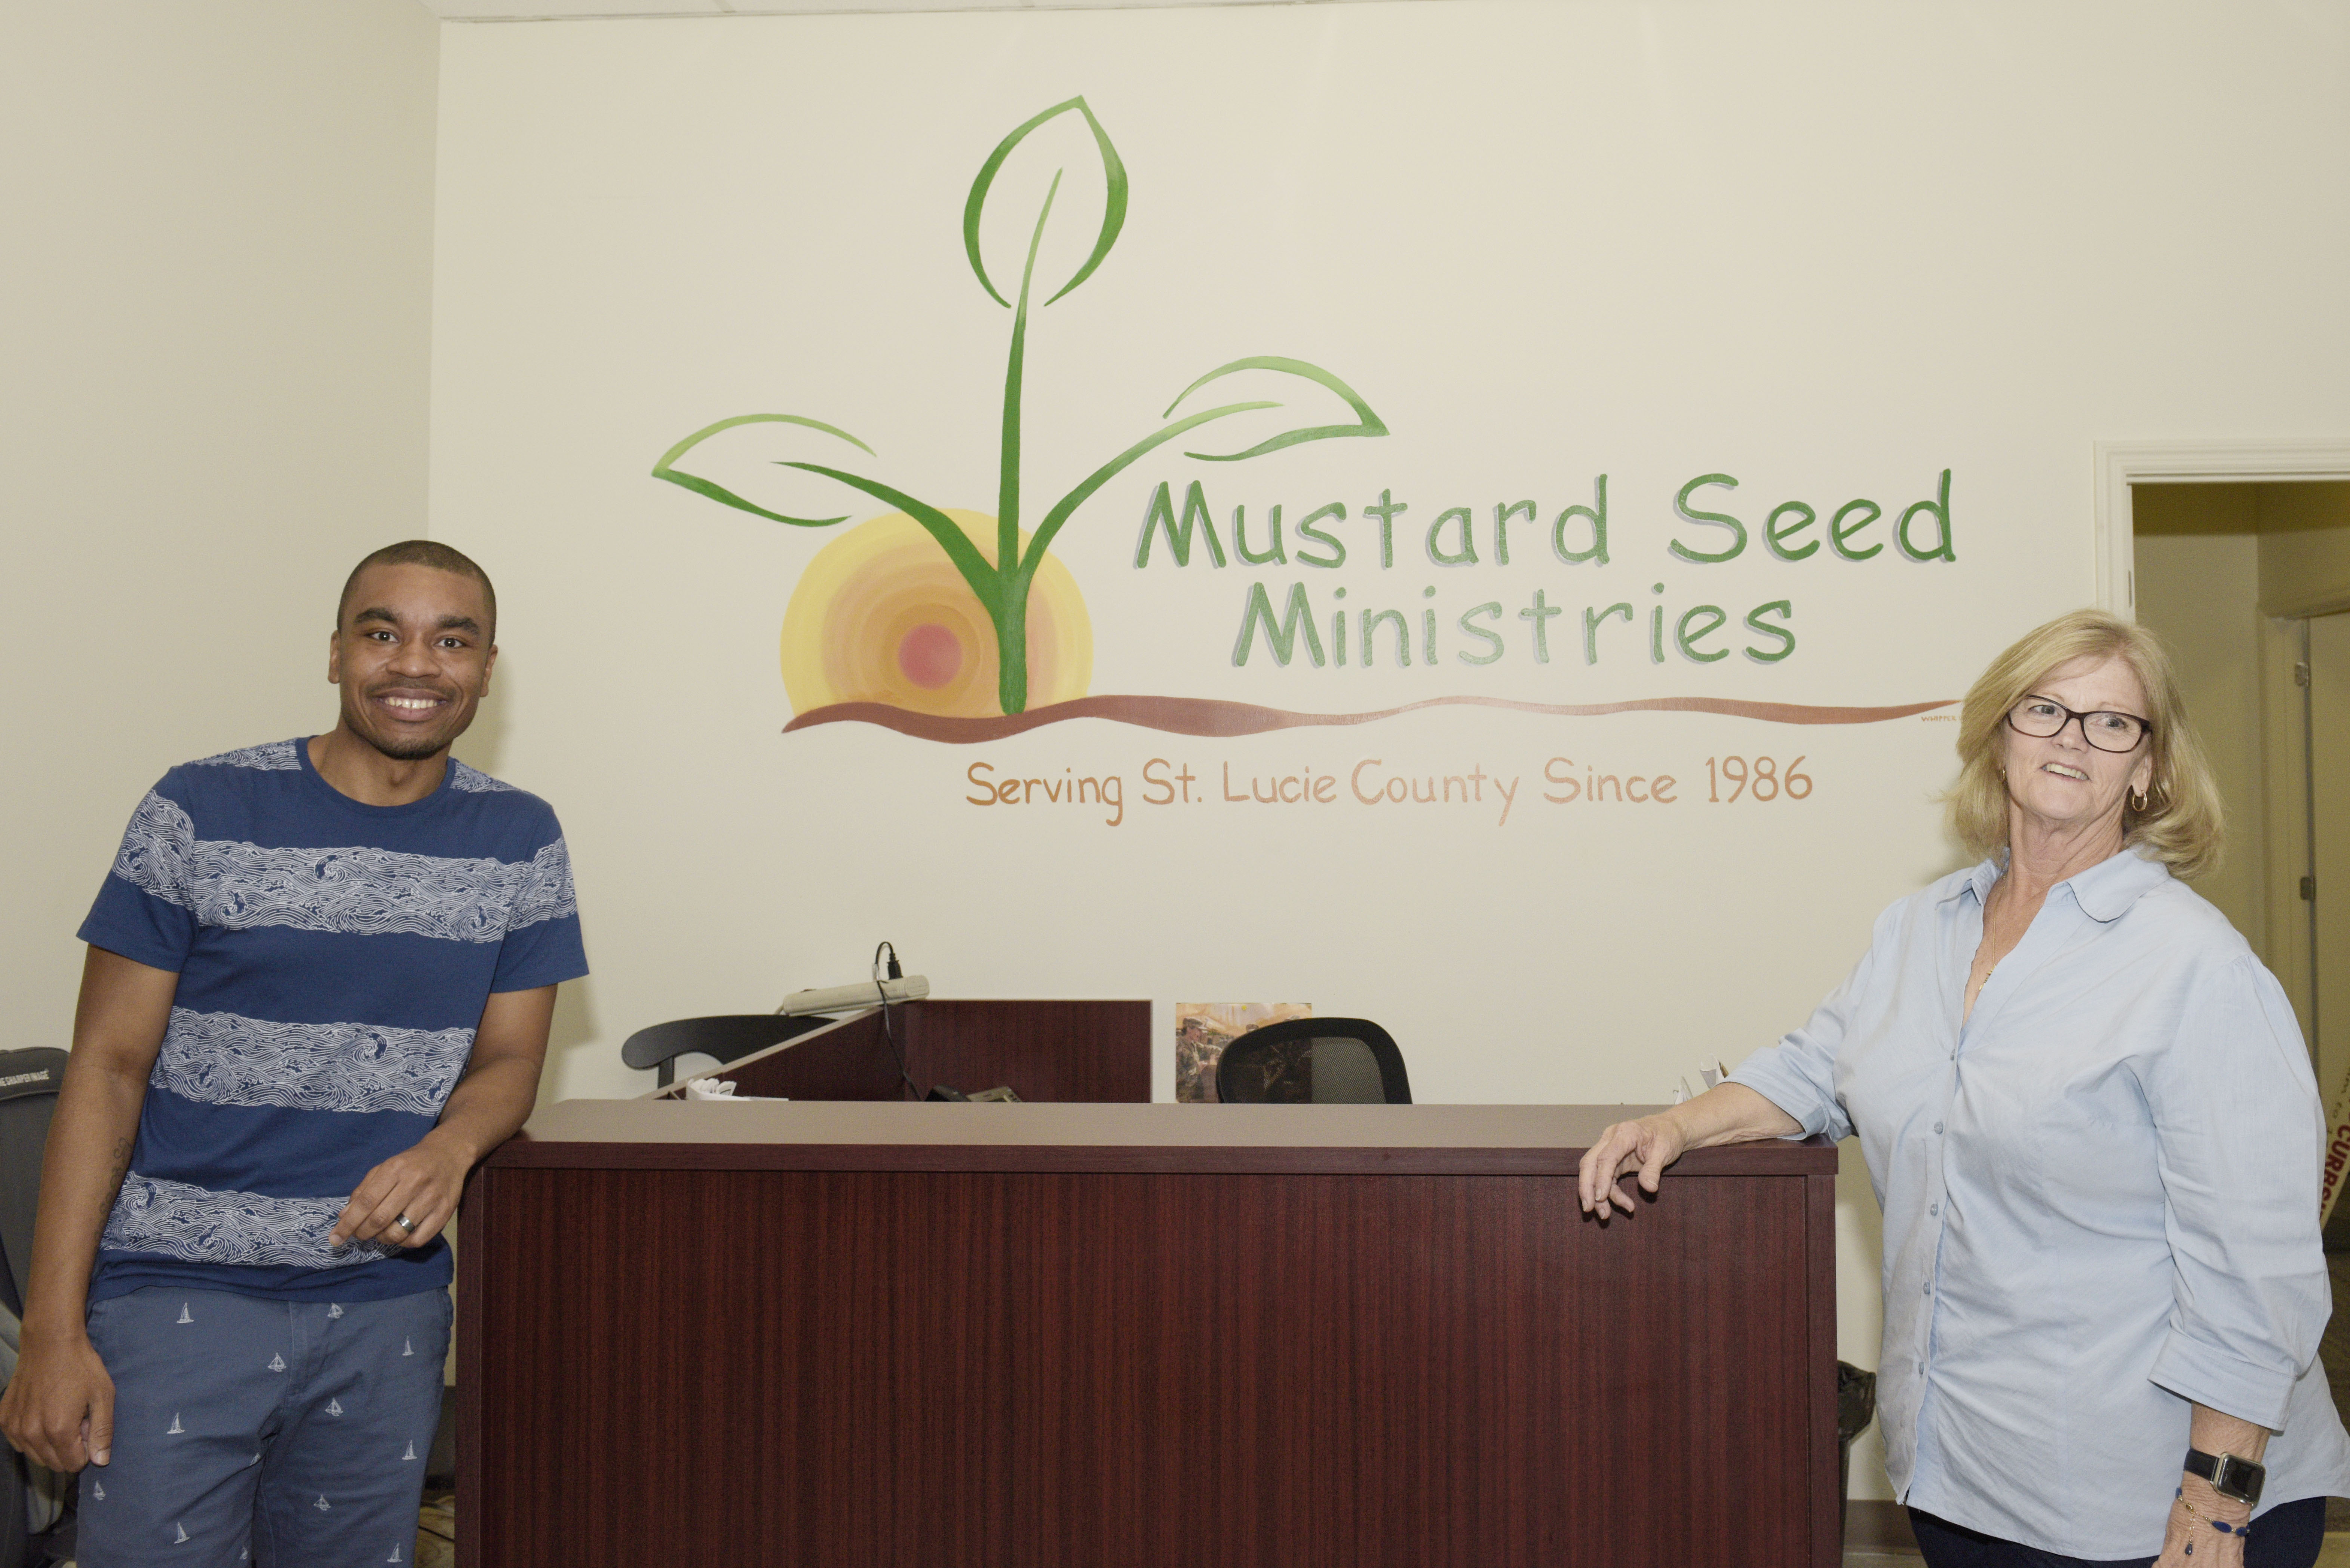 Mustard Seed Ministries